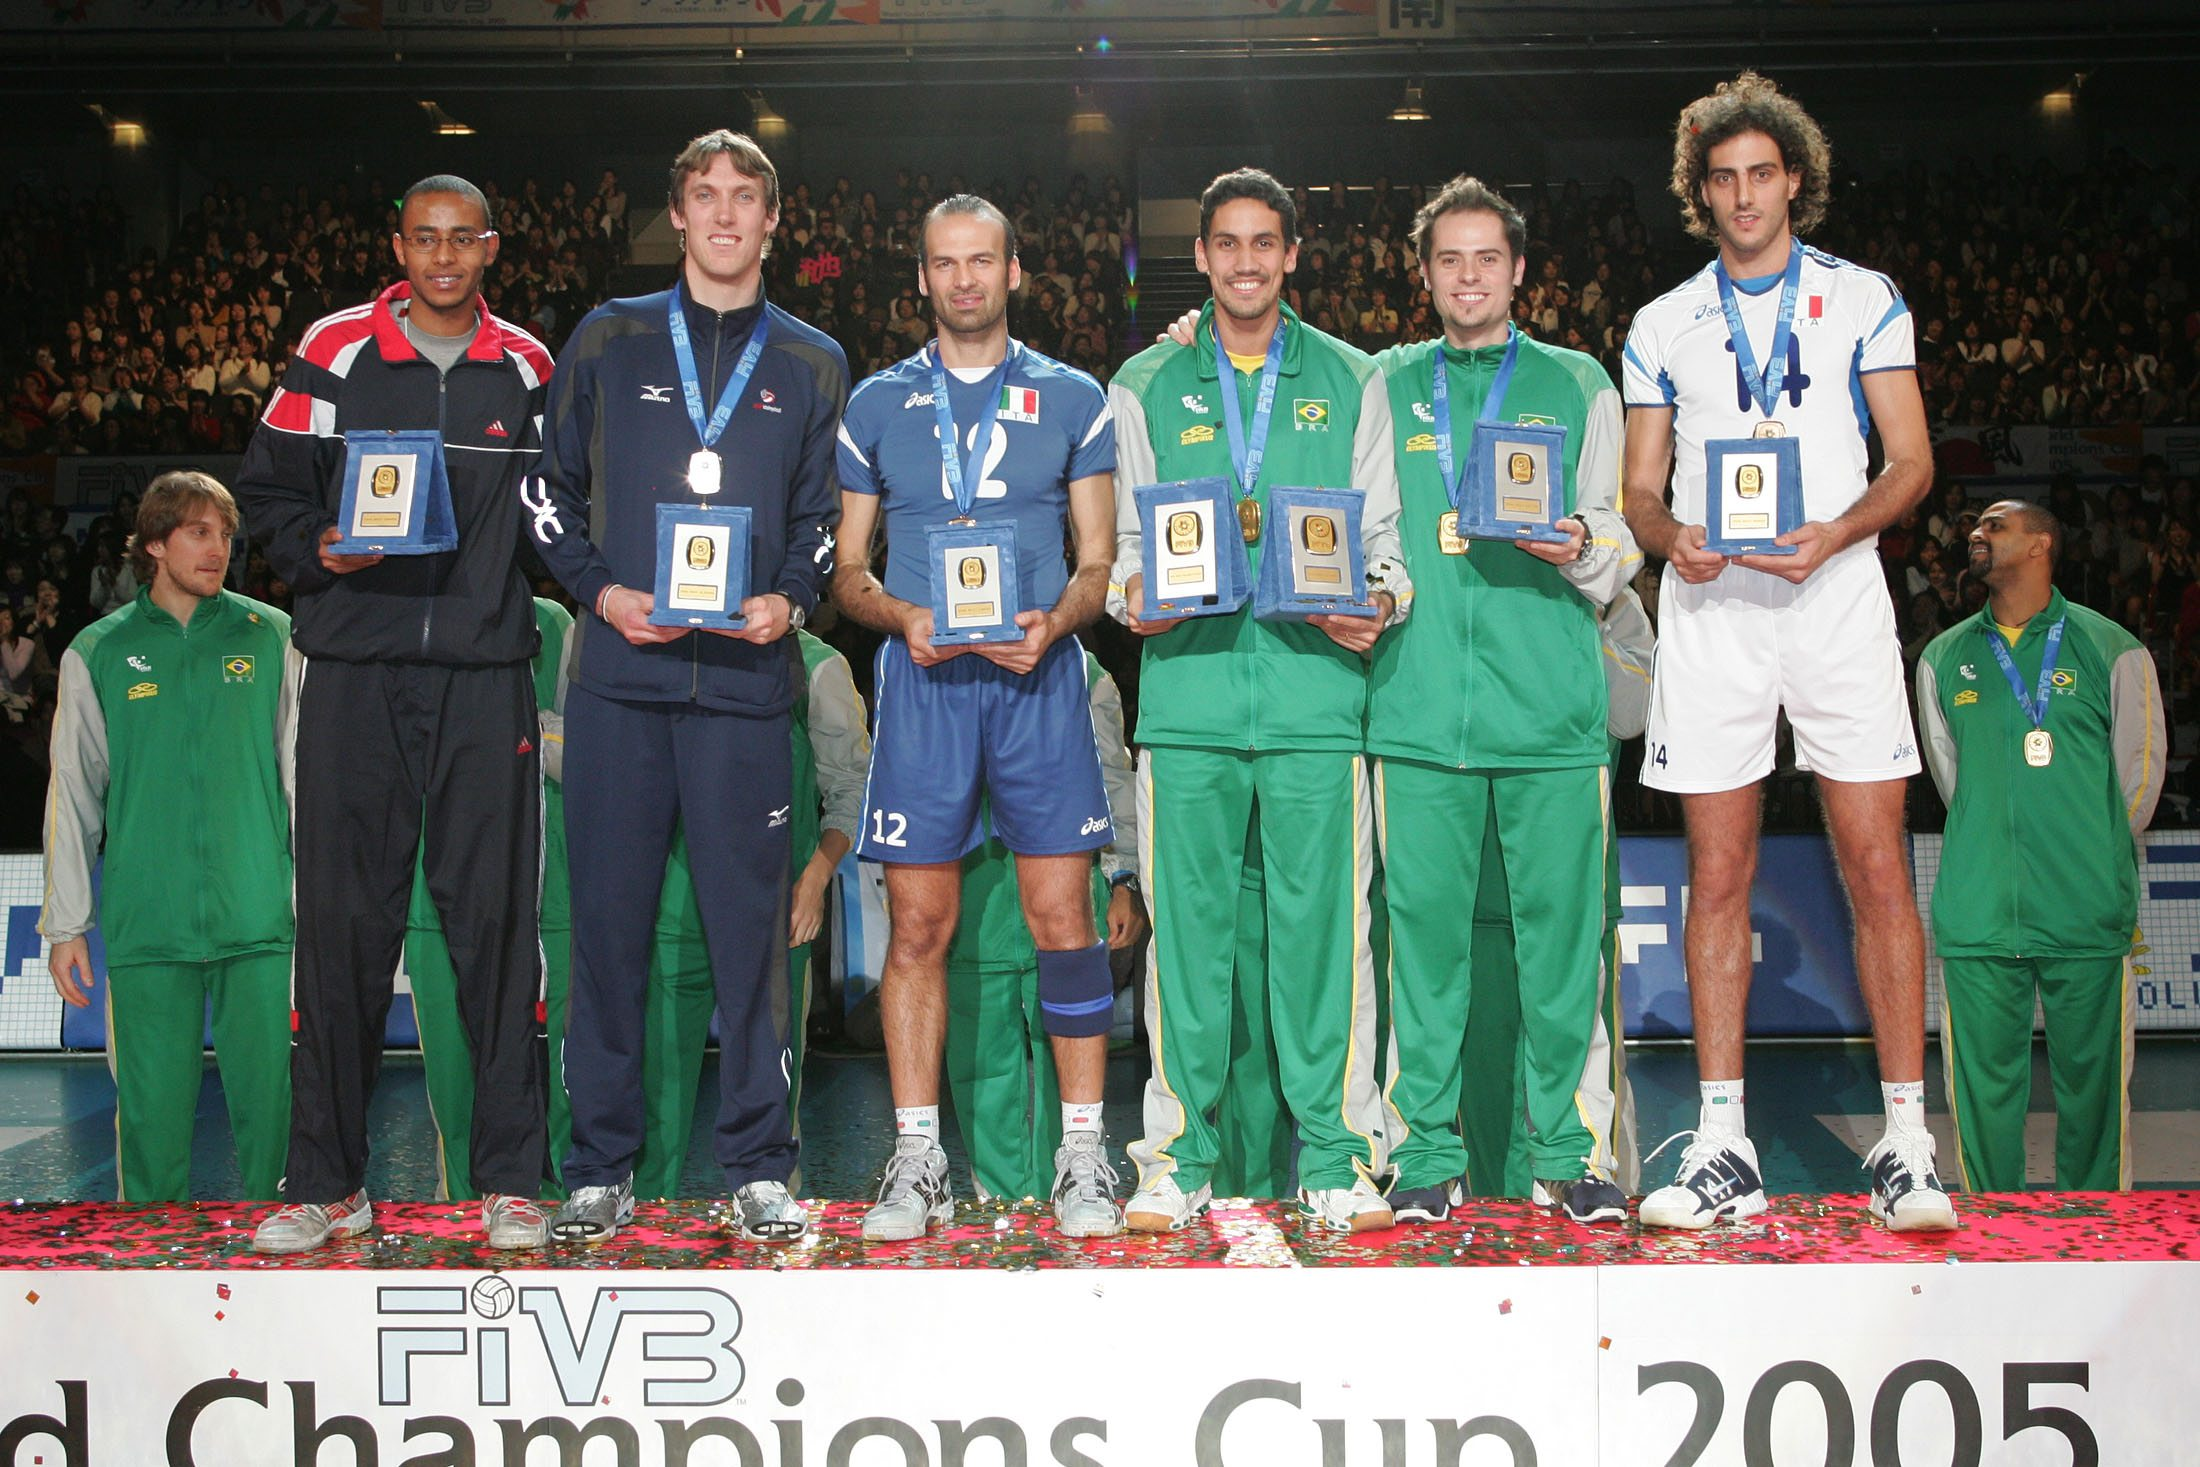 World Grand Champions Cup 2005